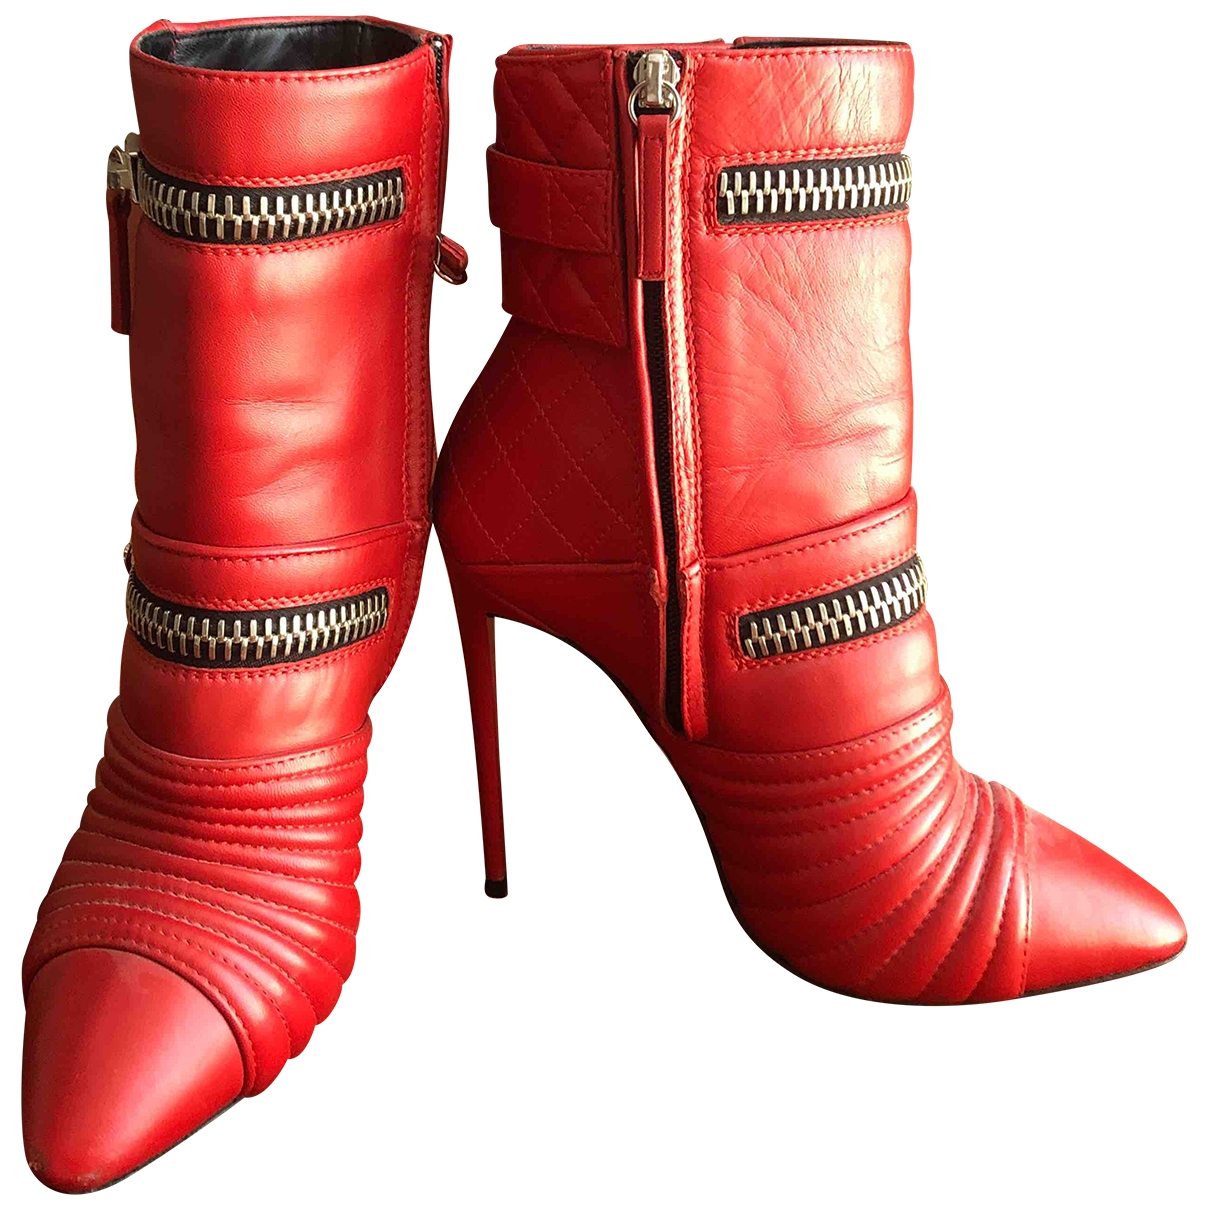 Giuseppe Zanotti \N Red Leather Ankle boots for Women 38 EU